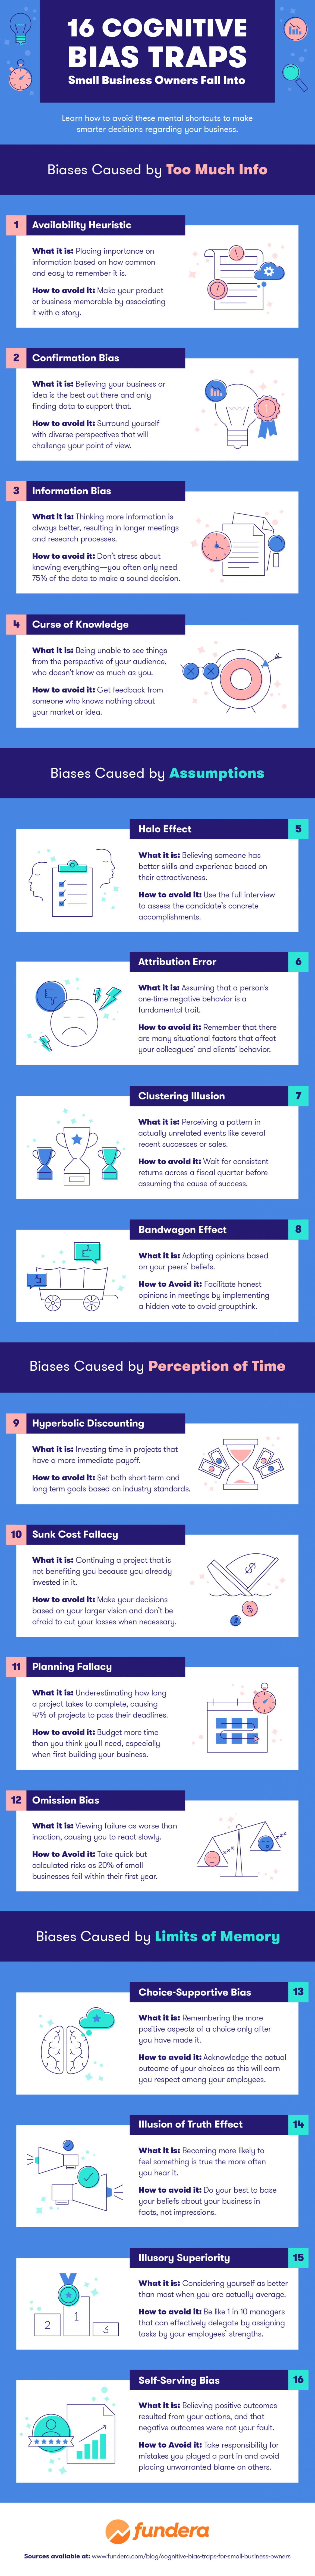 16 Cognitive Bias Traps Small Business Owners Fall Into (1)